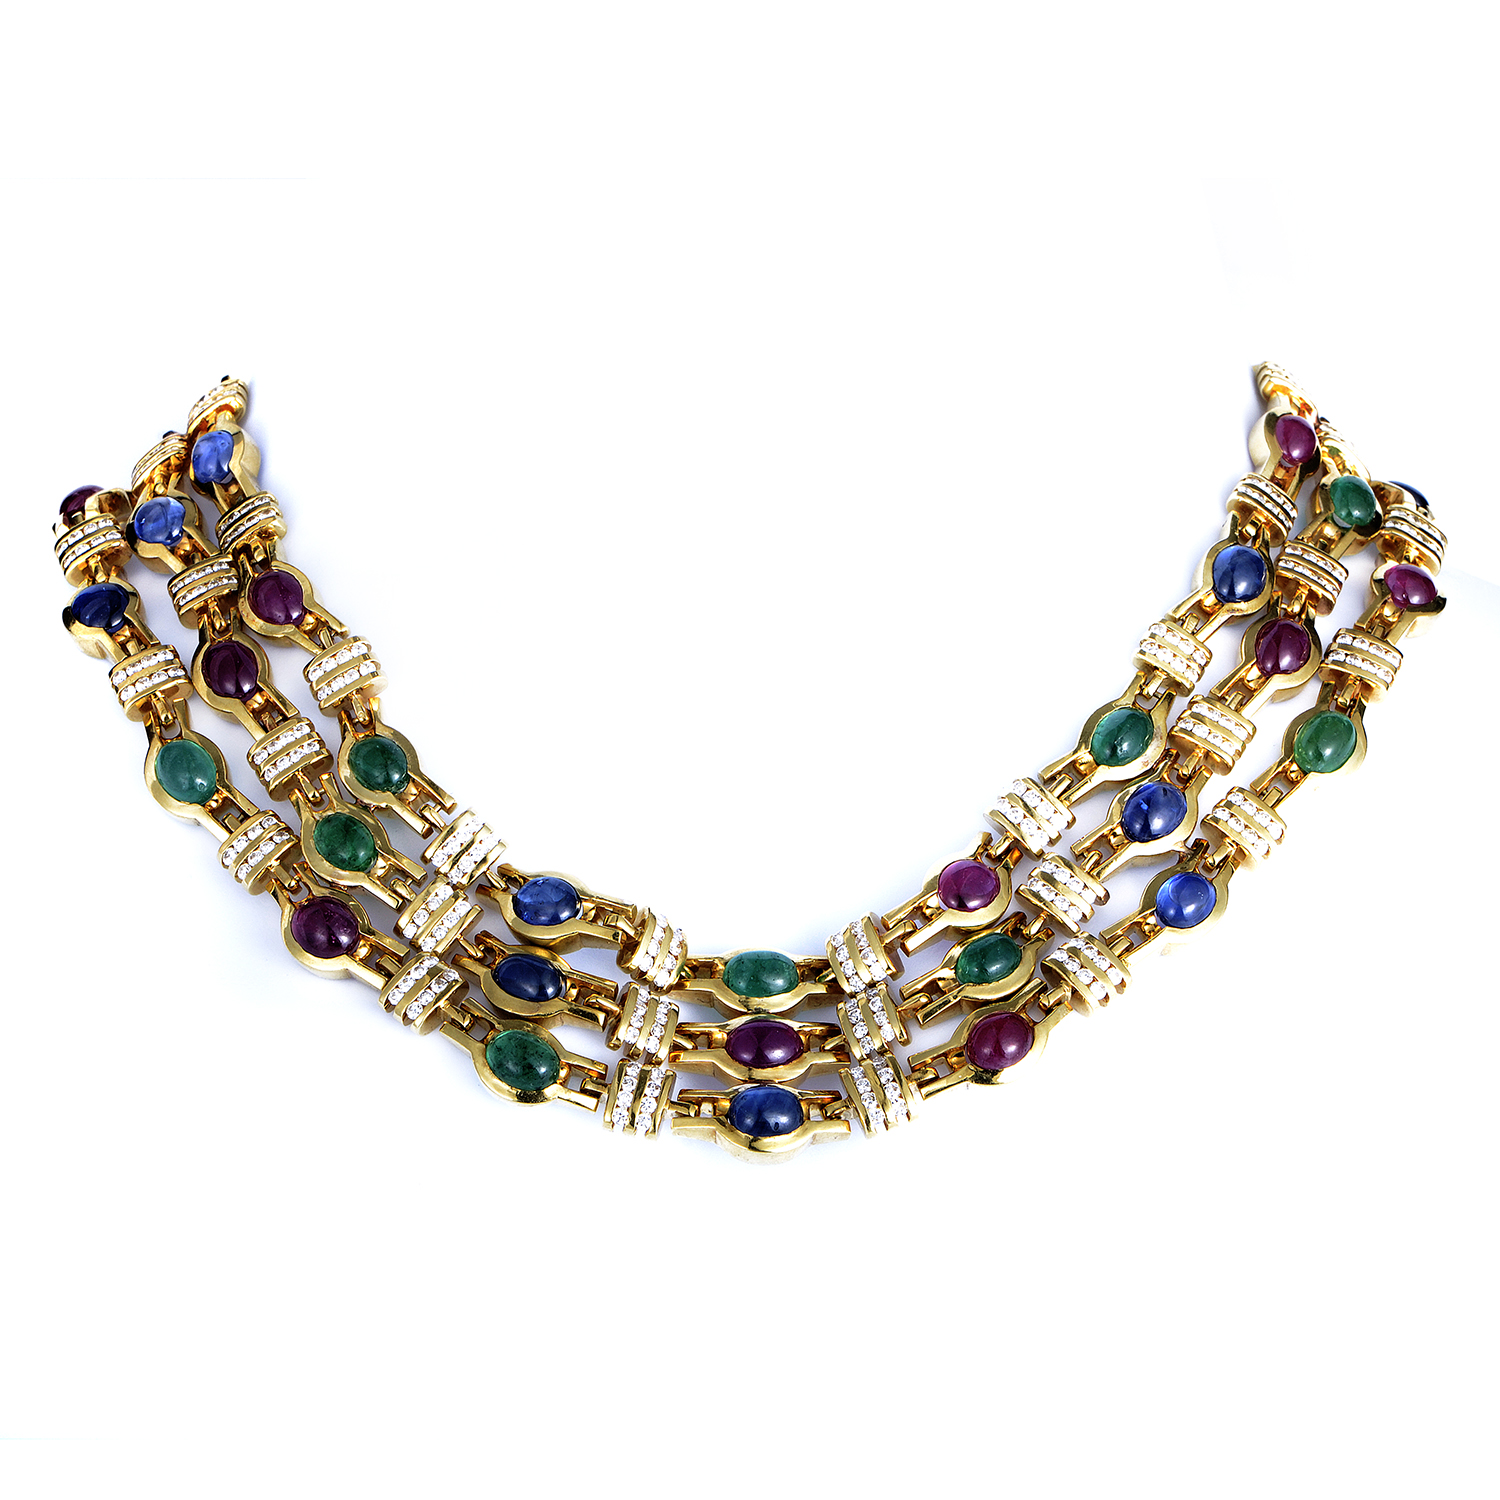 Women's 18K Yellow Gold Precious Gemstone Necklace